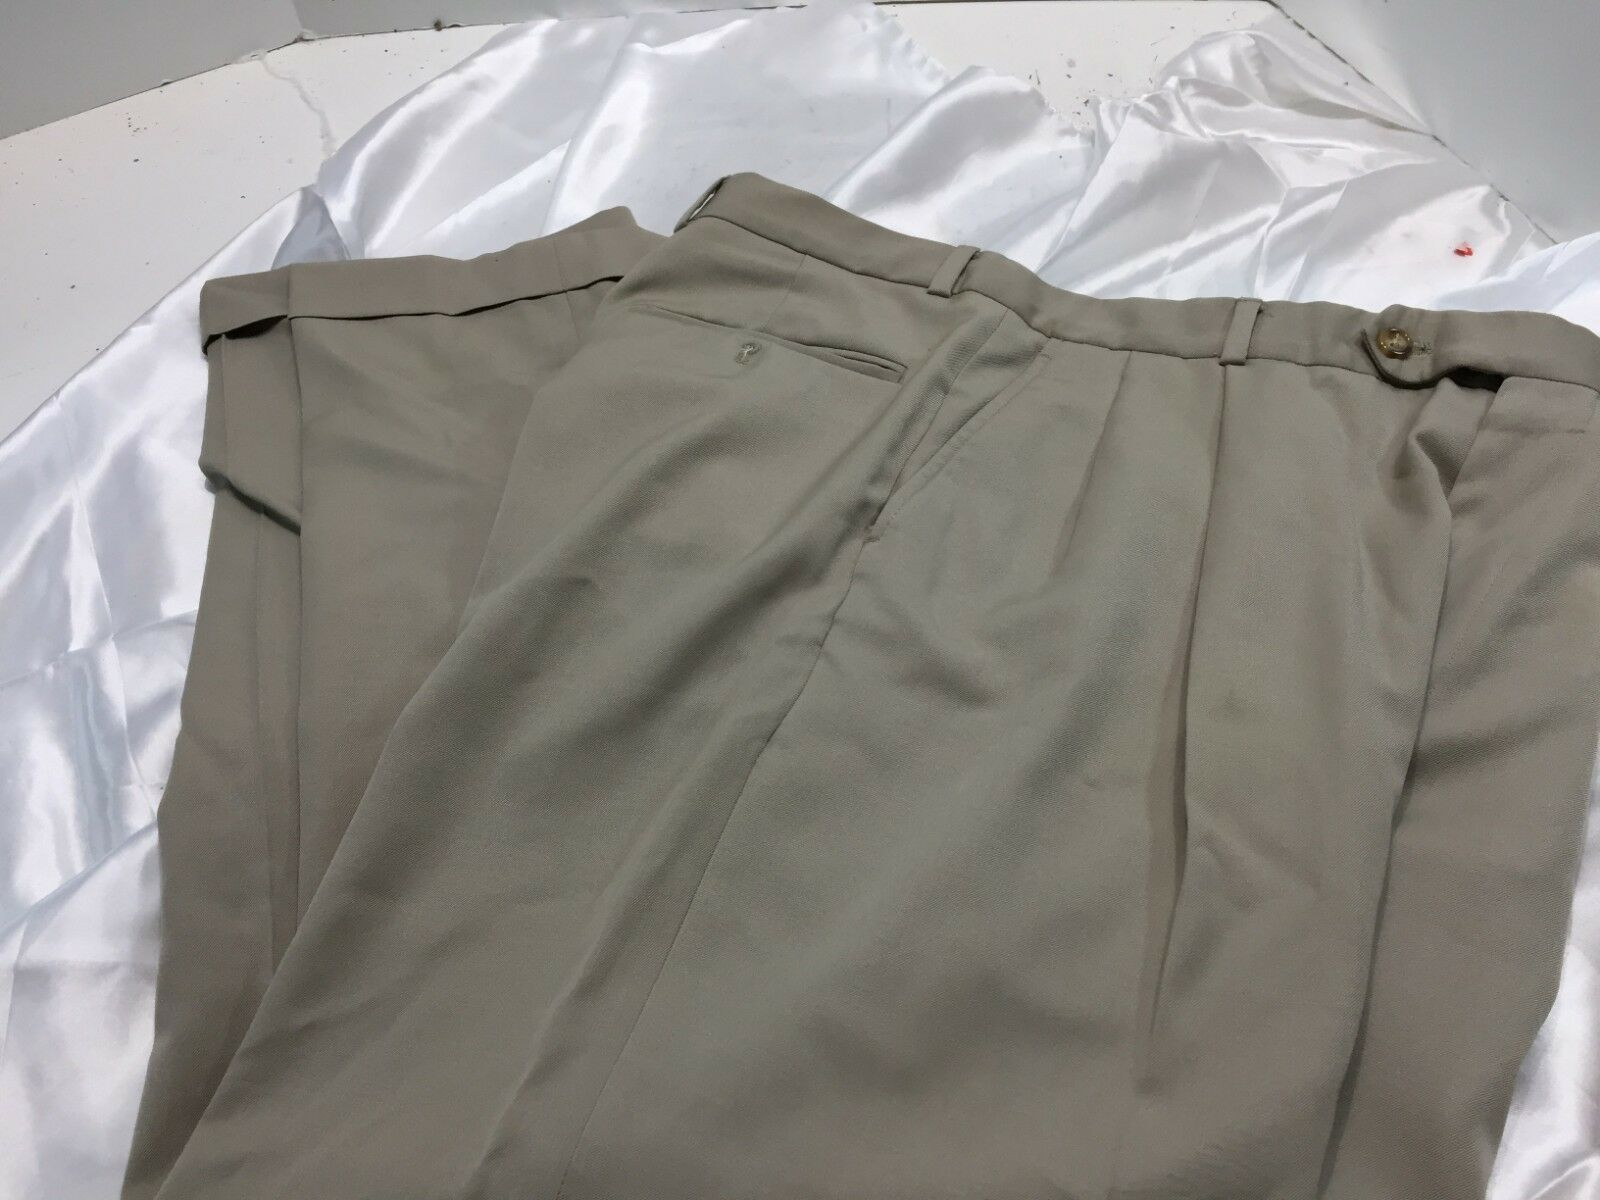 Vineyard Vines 100% Wool Pleated Front Beige Dress Pants Size 34R inseam 30 cuff